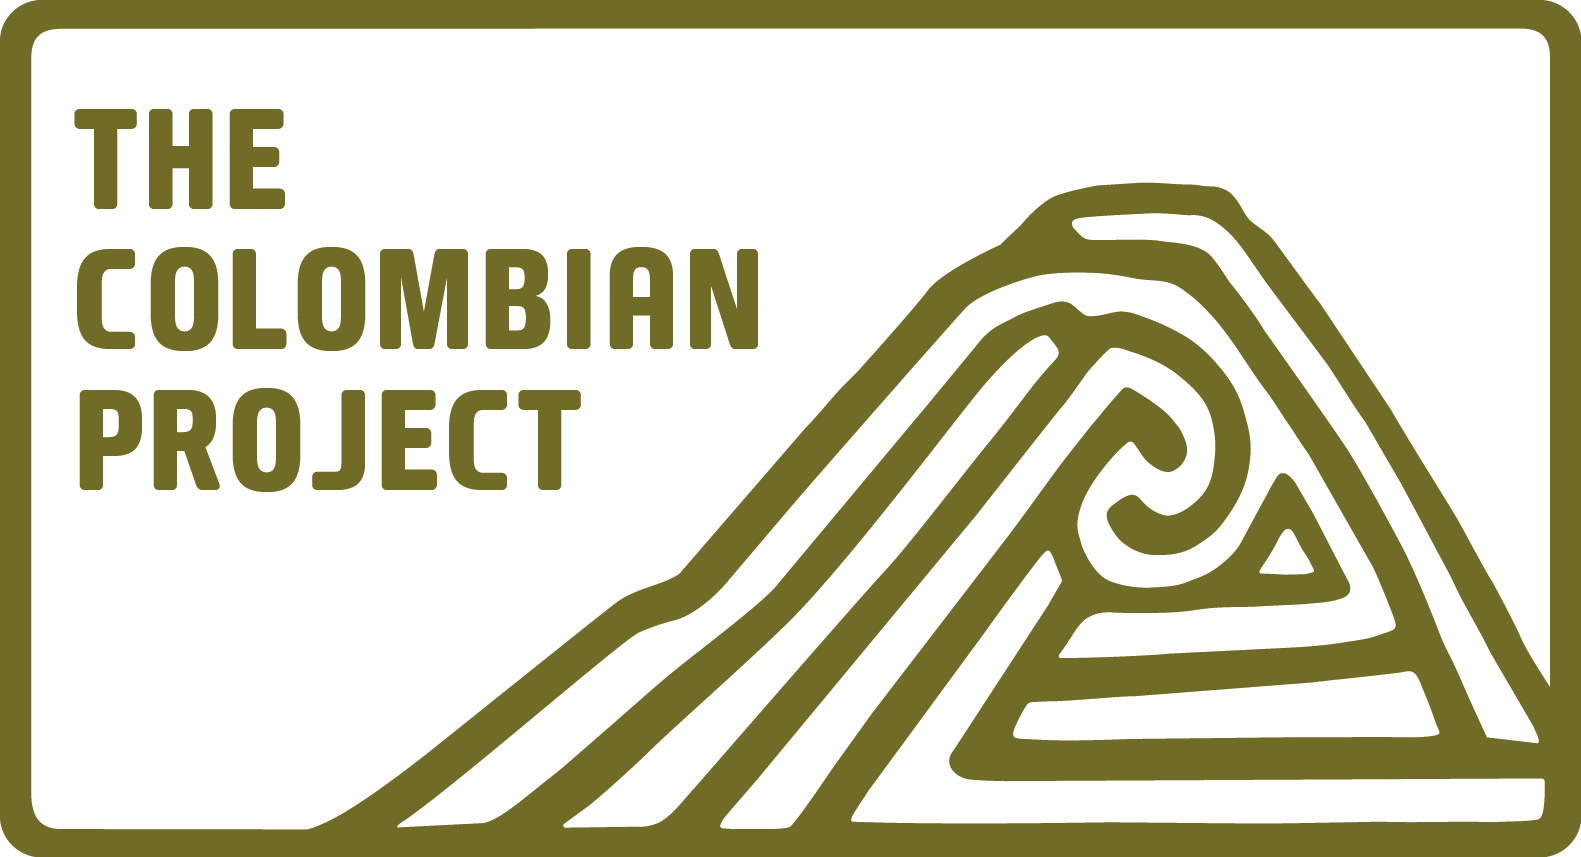 colombian project logo big.png